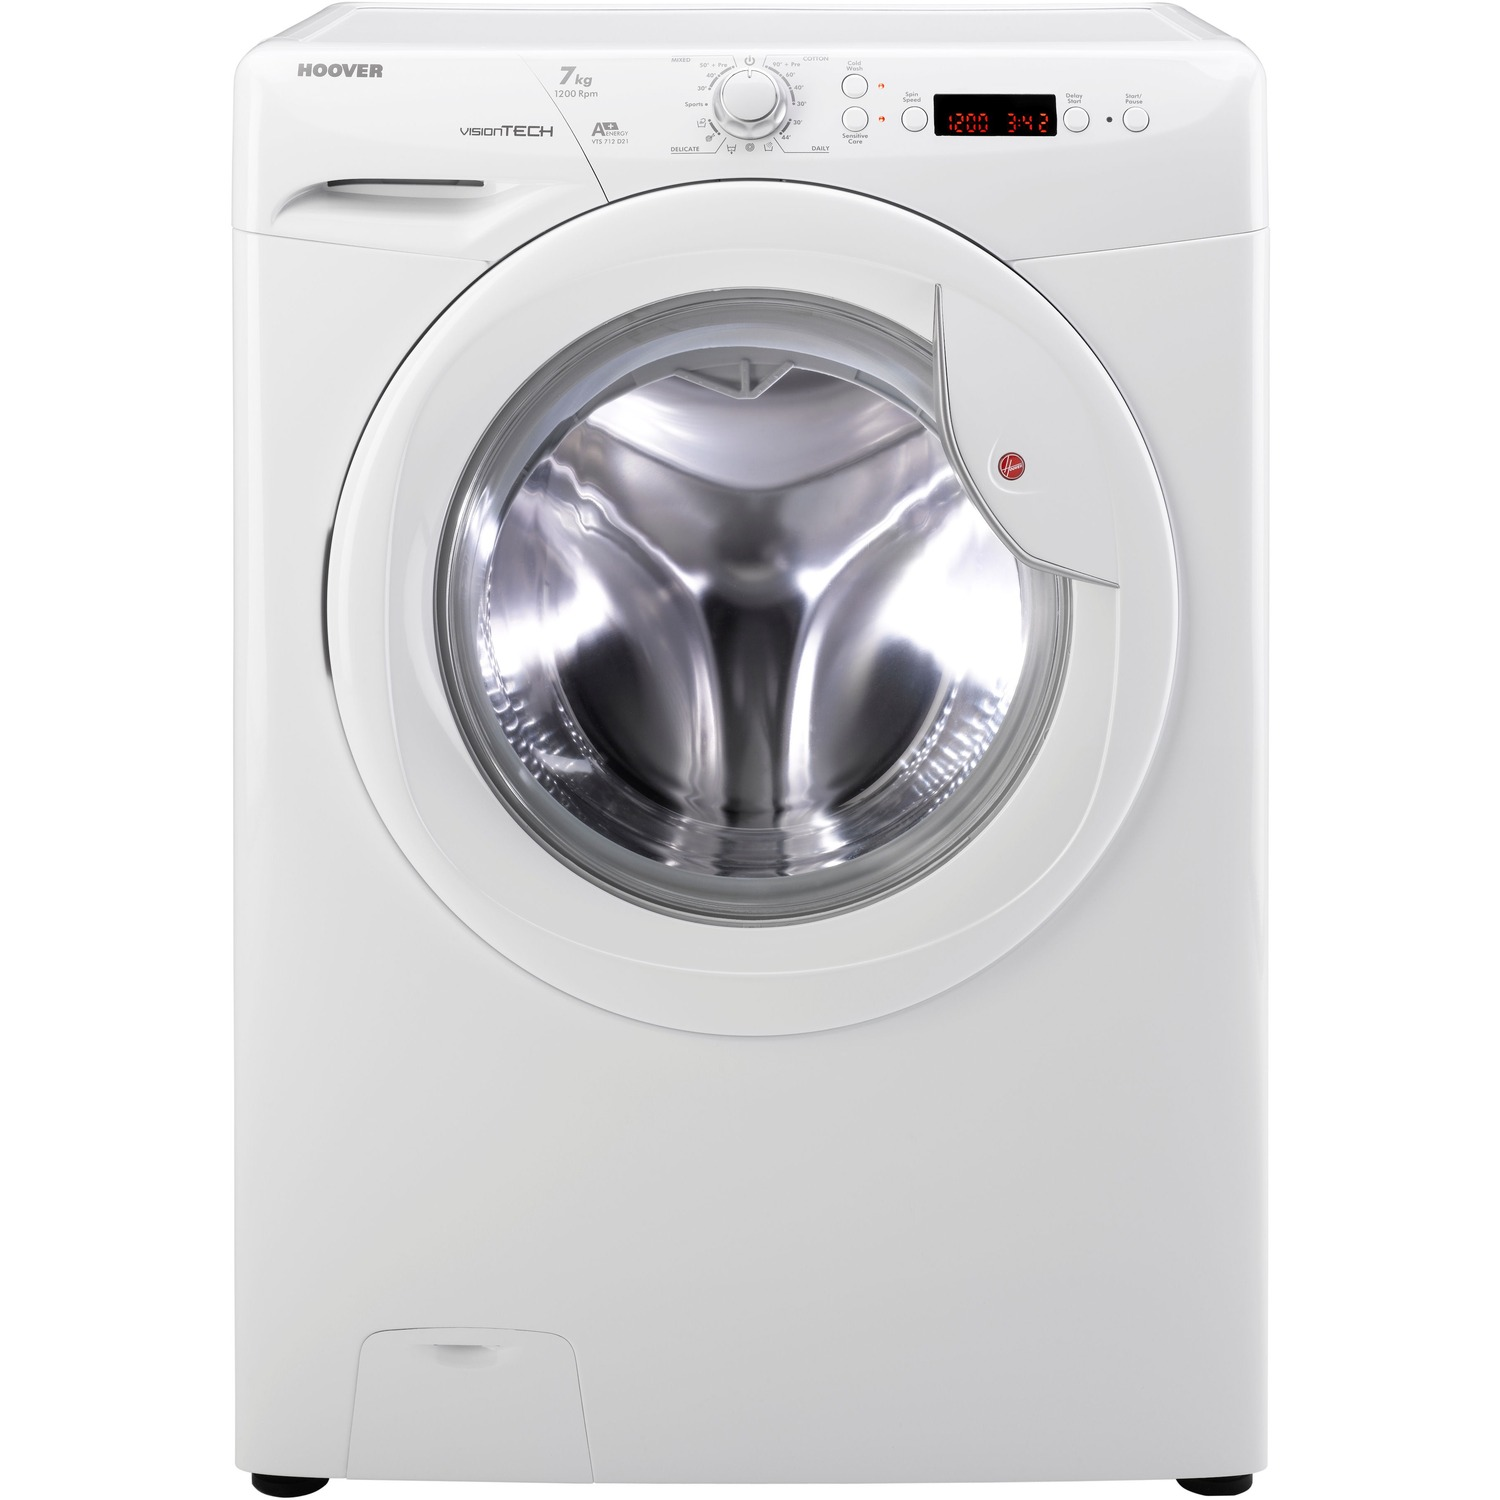 Click to enlarge - Washing machine new technology ...